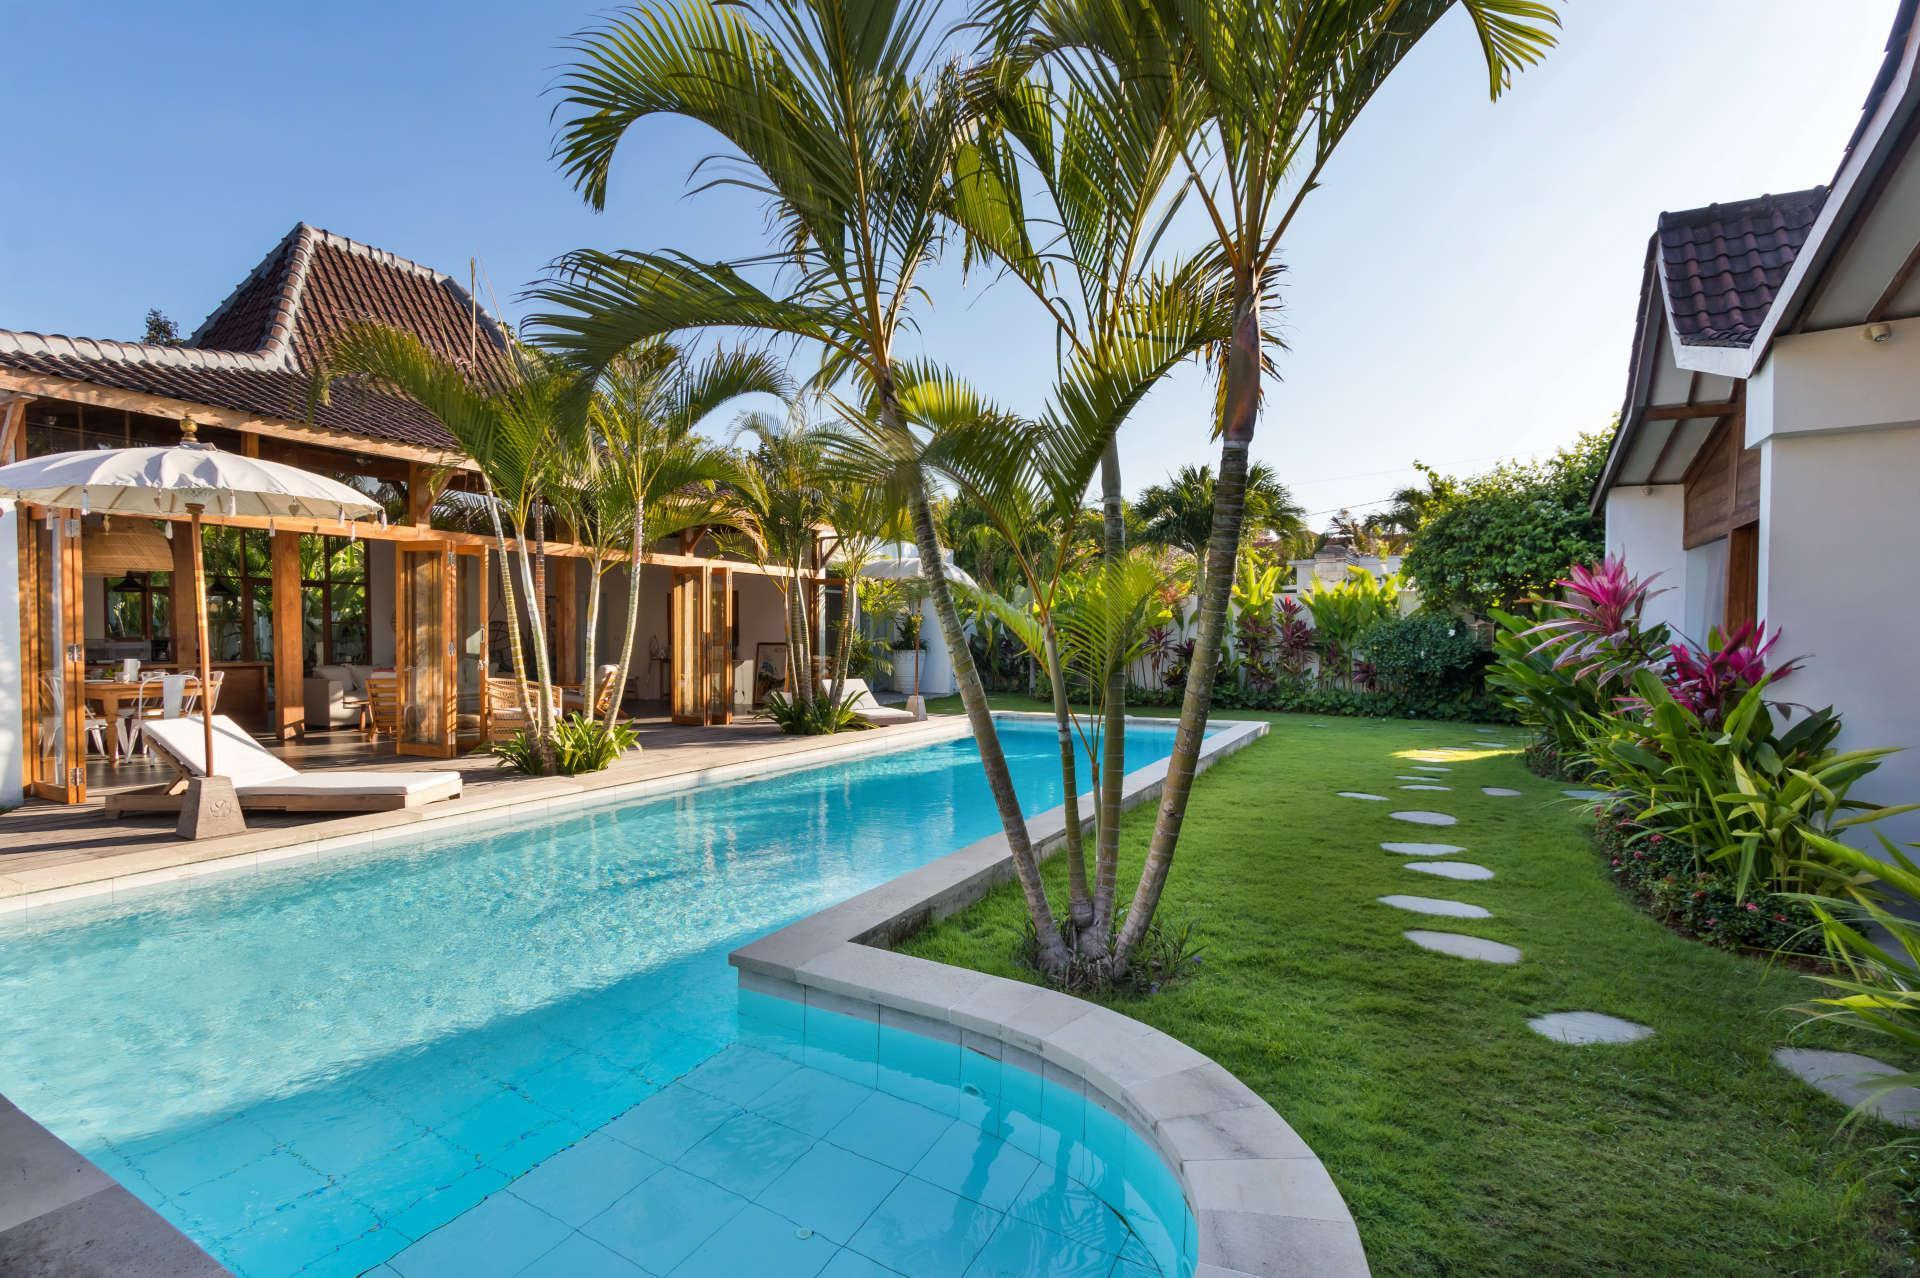 Picture Relaxing Beside Your Private Pool In Seminyak While The Staff Serve You Ice Cold Drinks